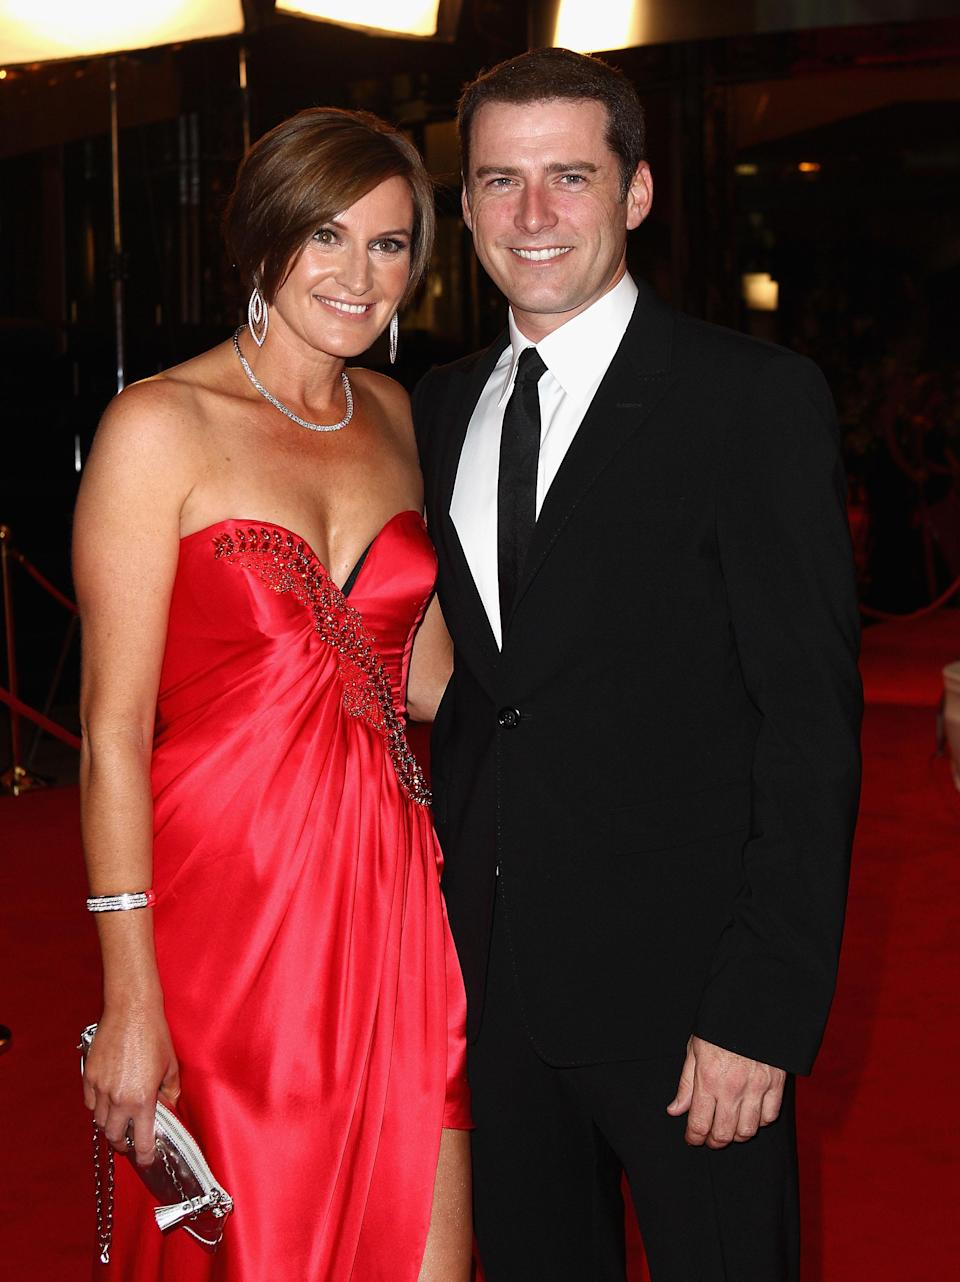 Stefanovic has been weathering media criticism since leaving his wife of more than 20 years just two years ago. Photo: Getty Images